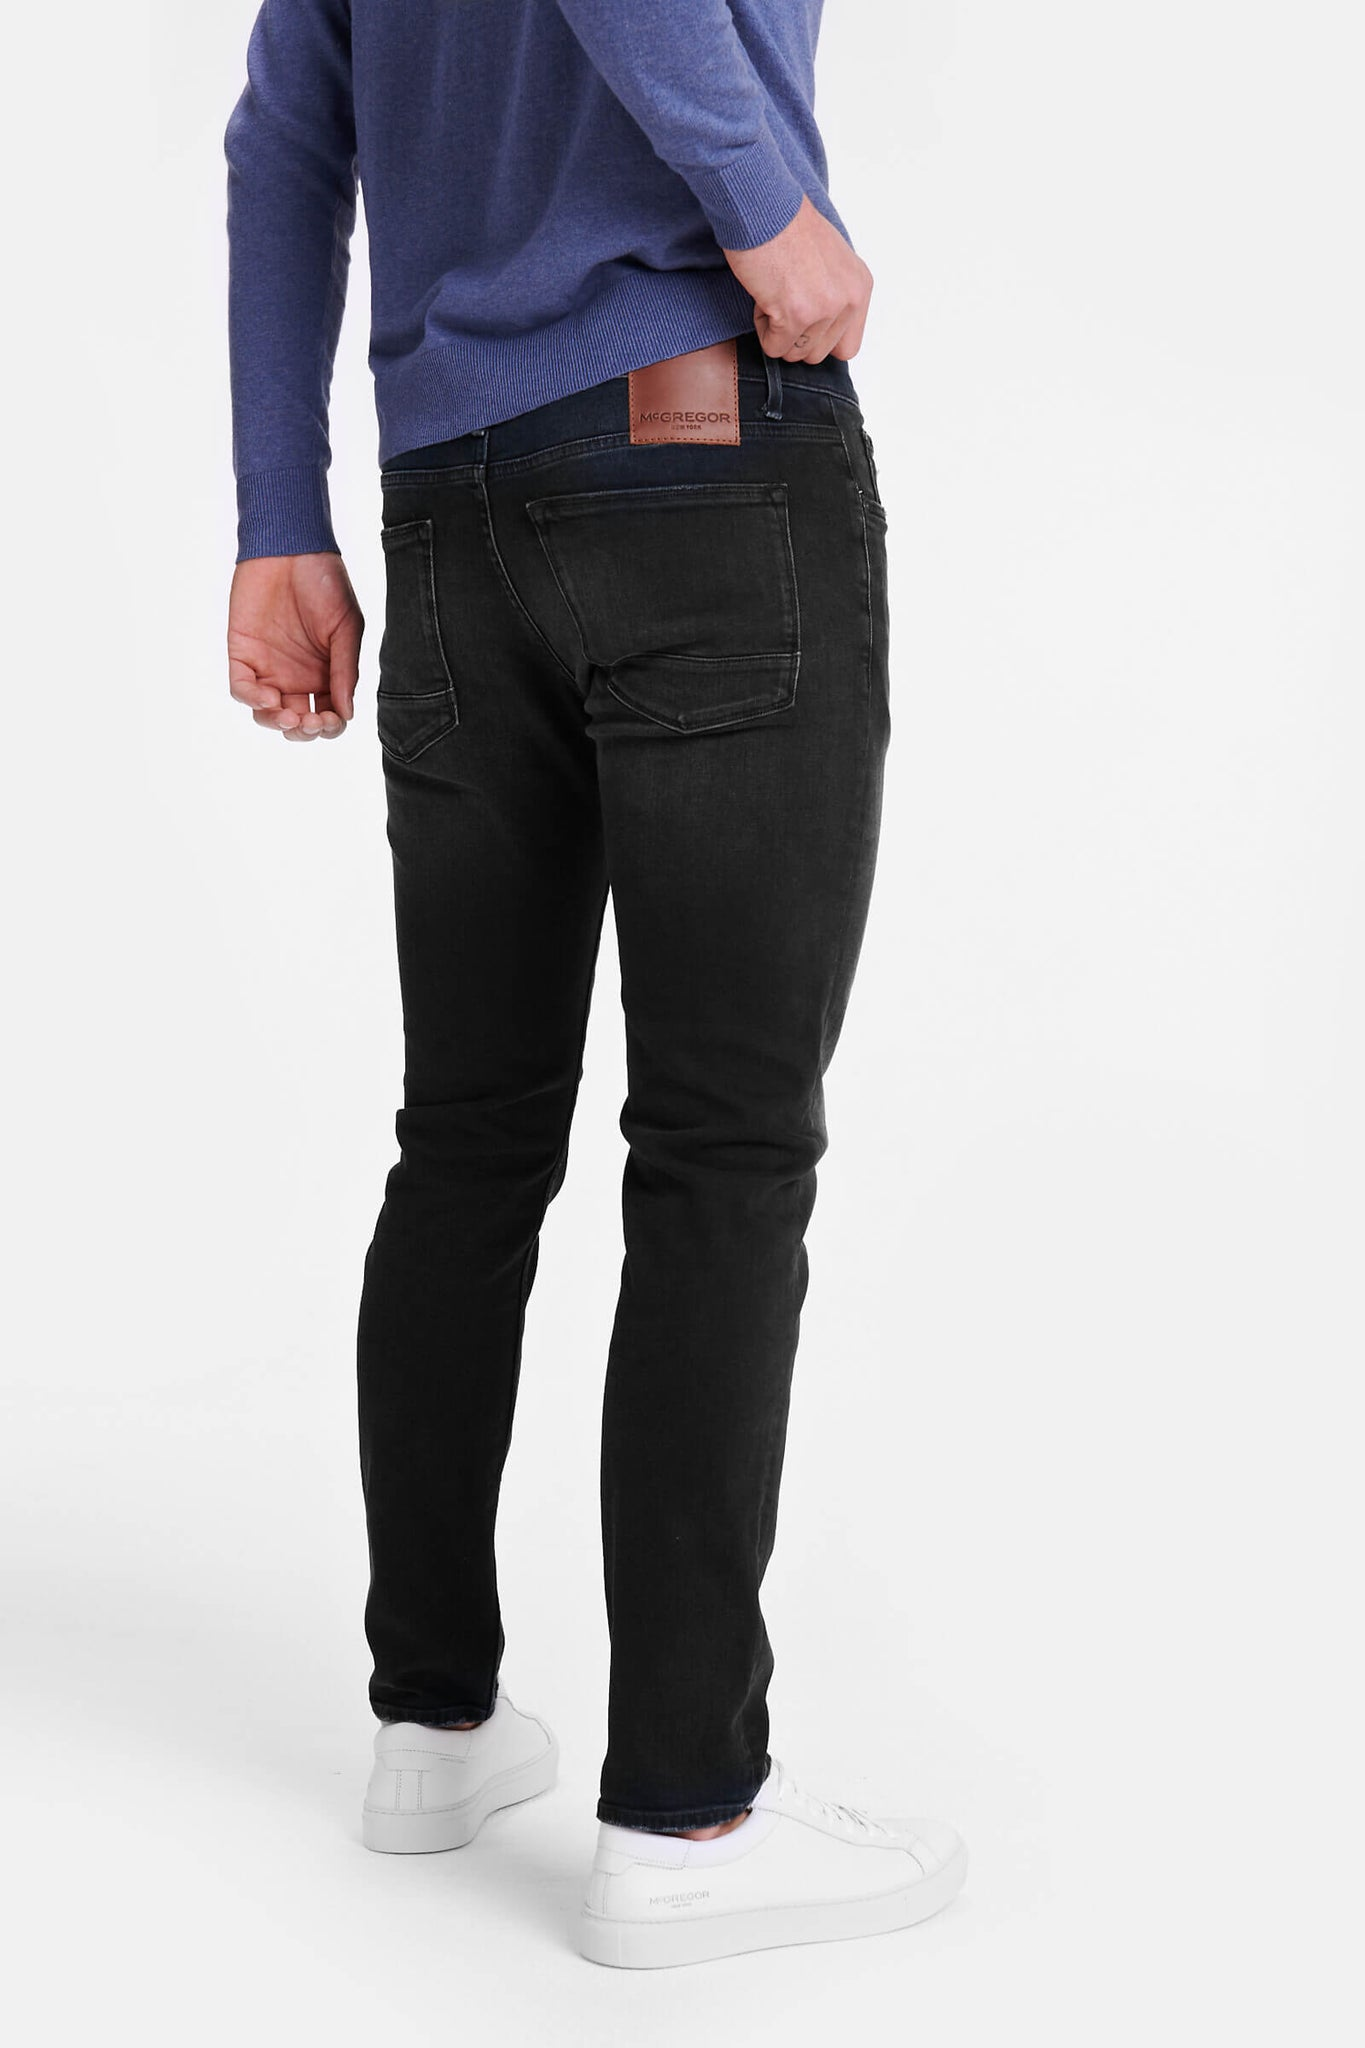 Slim fit jeans in donker blauwe wassing